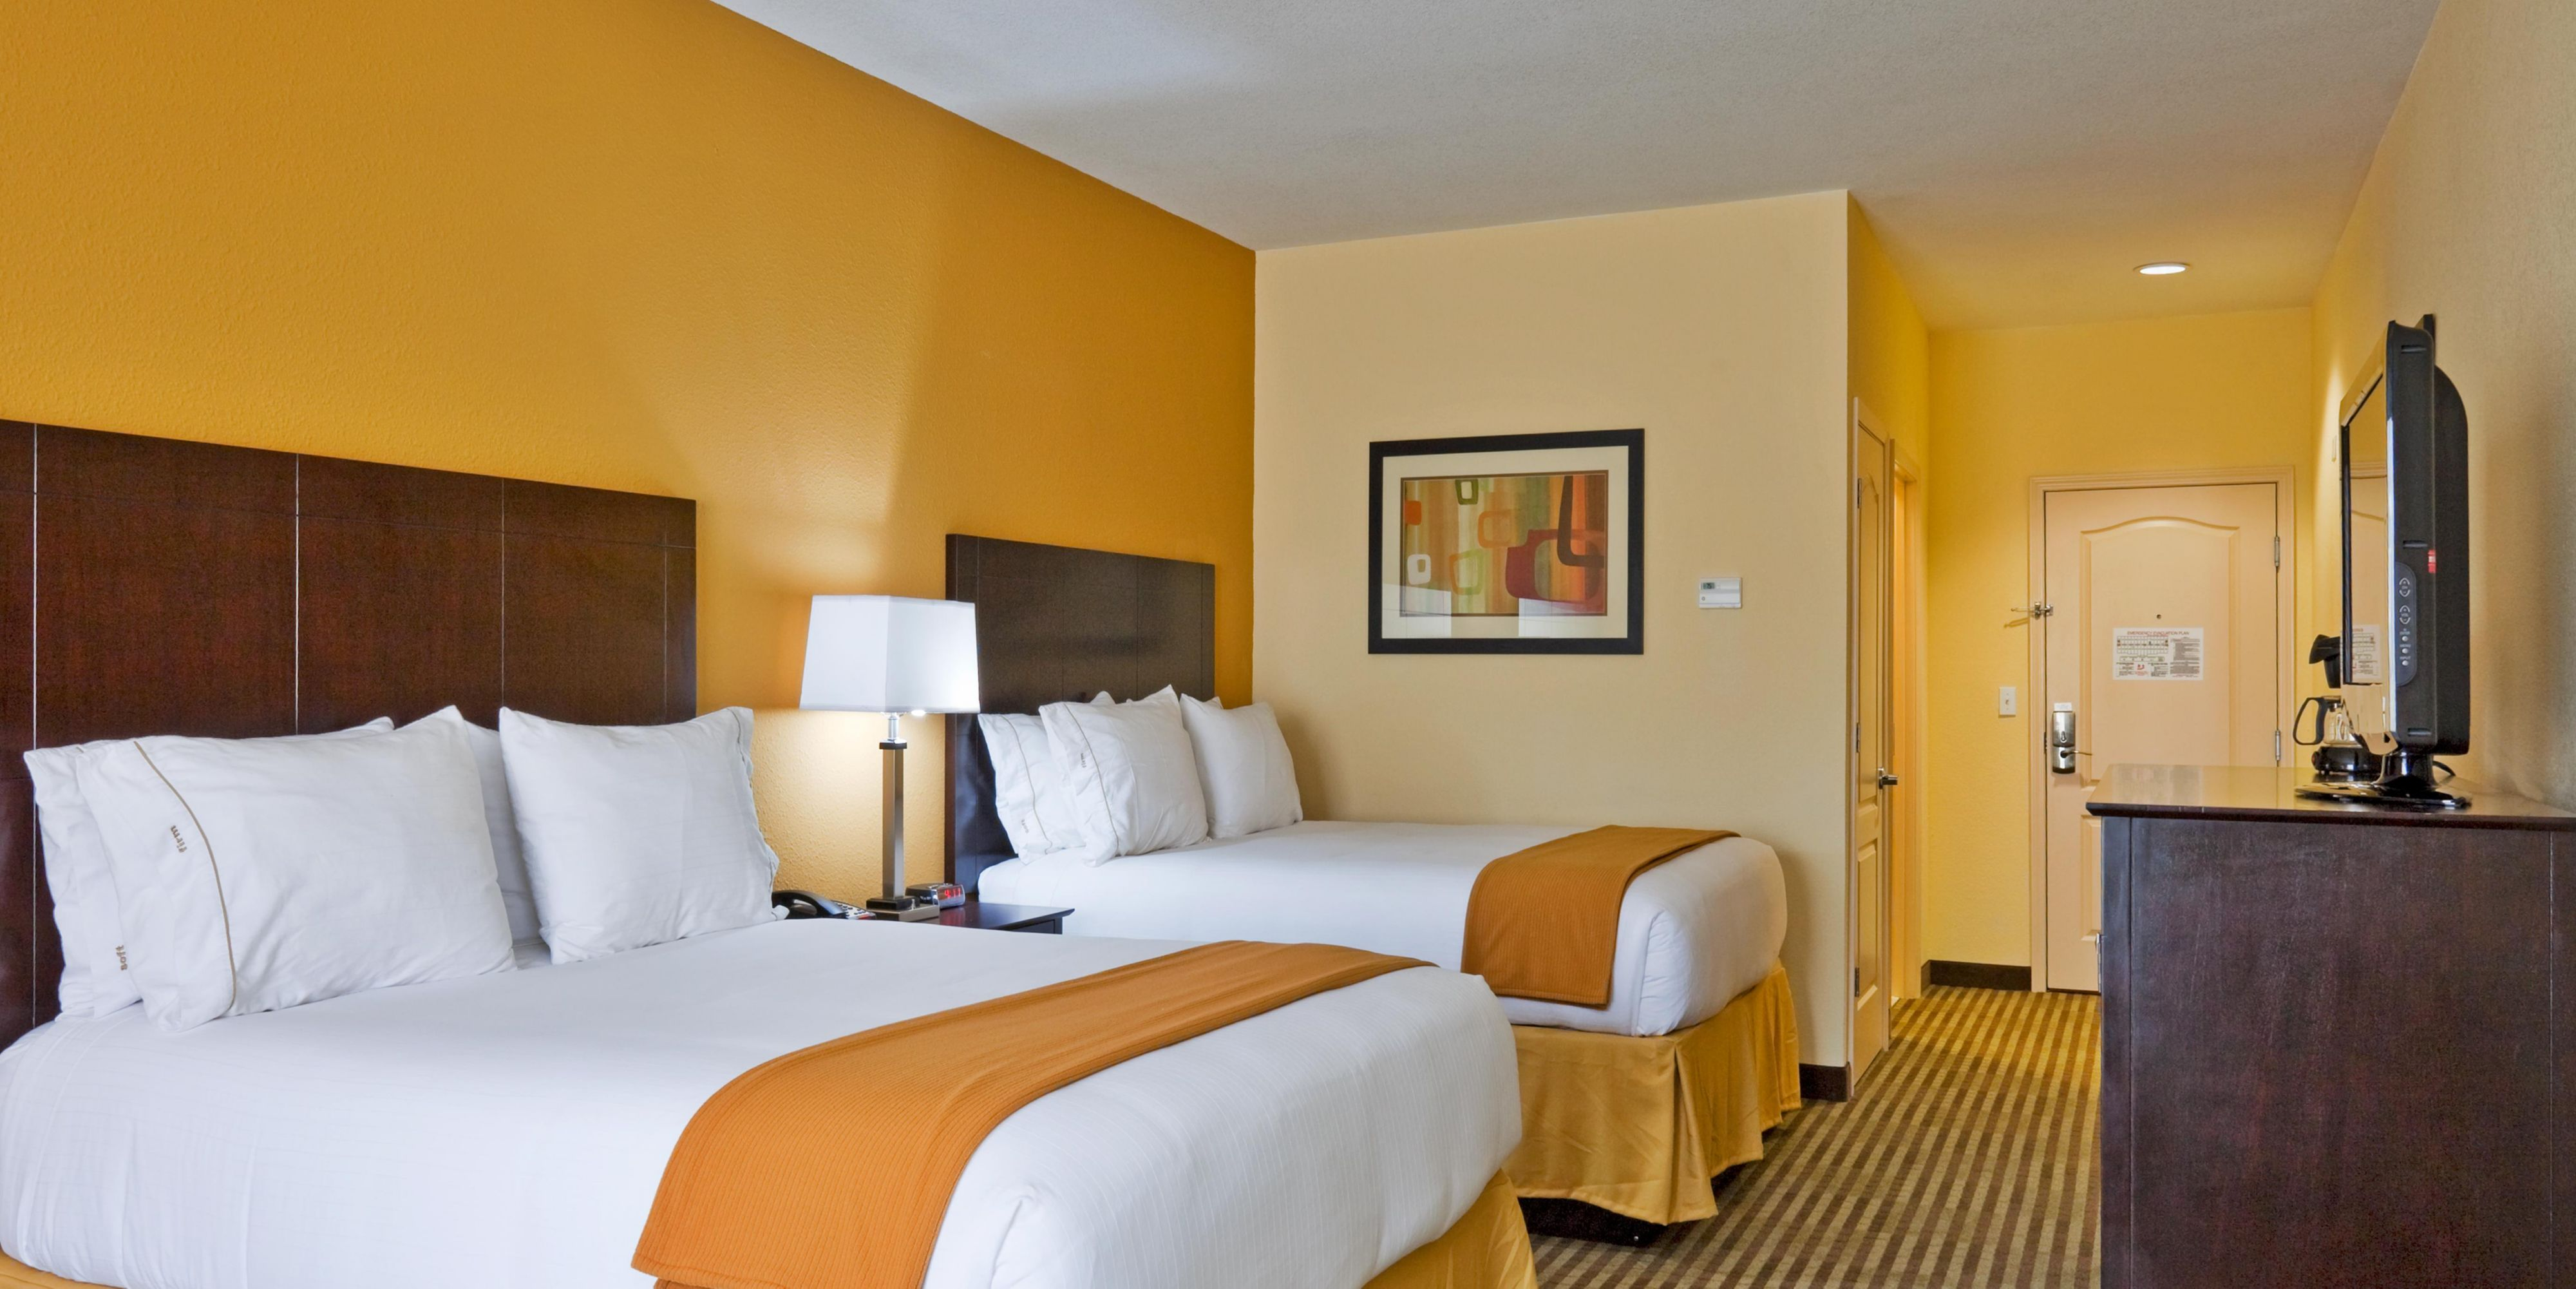 Holiday Inn Express And Suites Greenville 4274334076 2x1